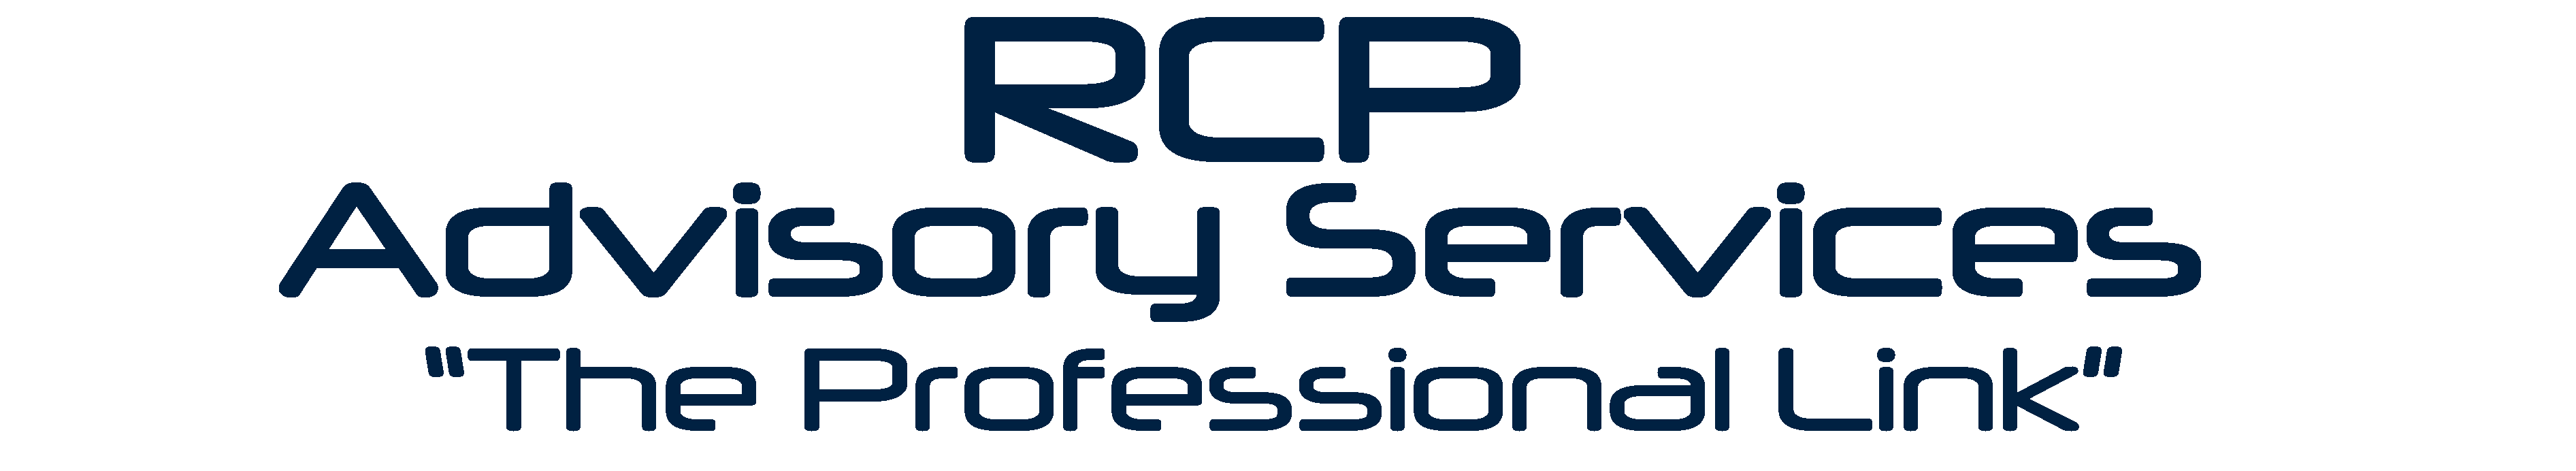 RCP Advisory Services